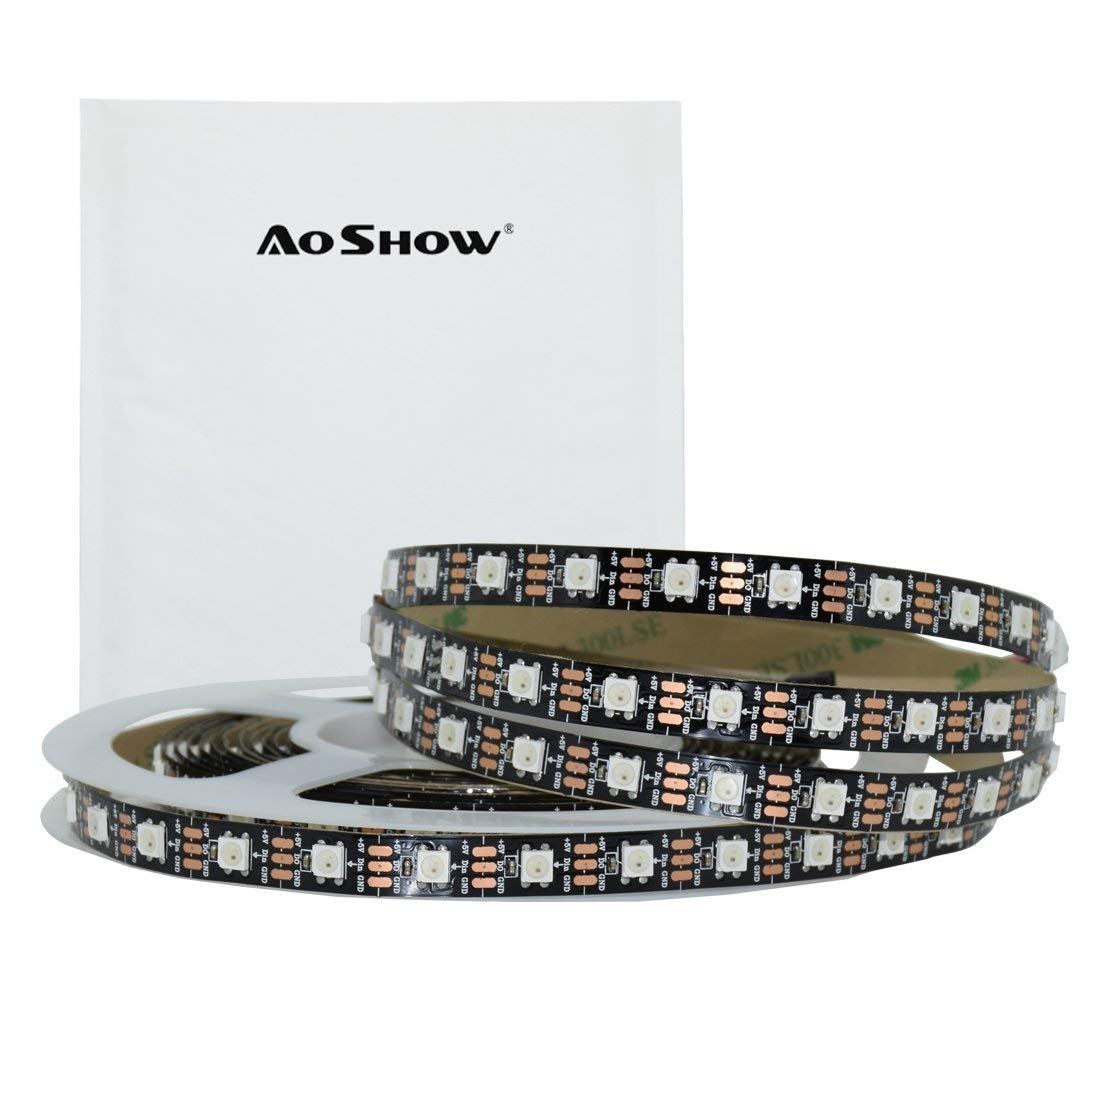 Aoshow 16.4FT 300LEDs WS2812B 5V LED Piexl Tape Light 60Pixels/3.28FT SMD 5050 RGB Changing Full Color Each LED is Independently Addressable Non-Waterproof IP20 (Black PCB)